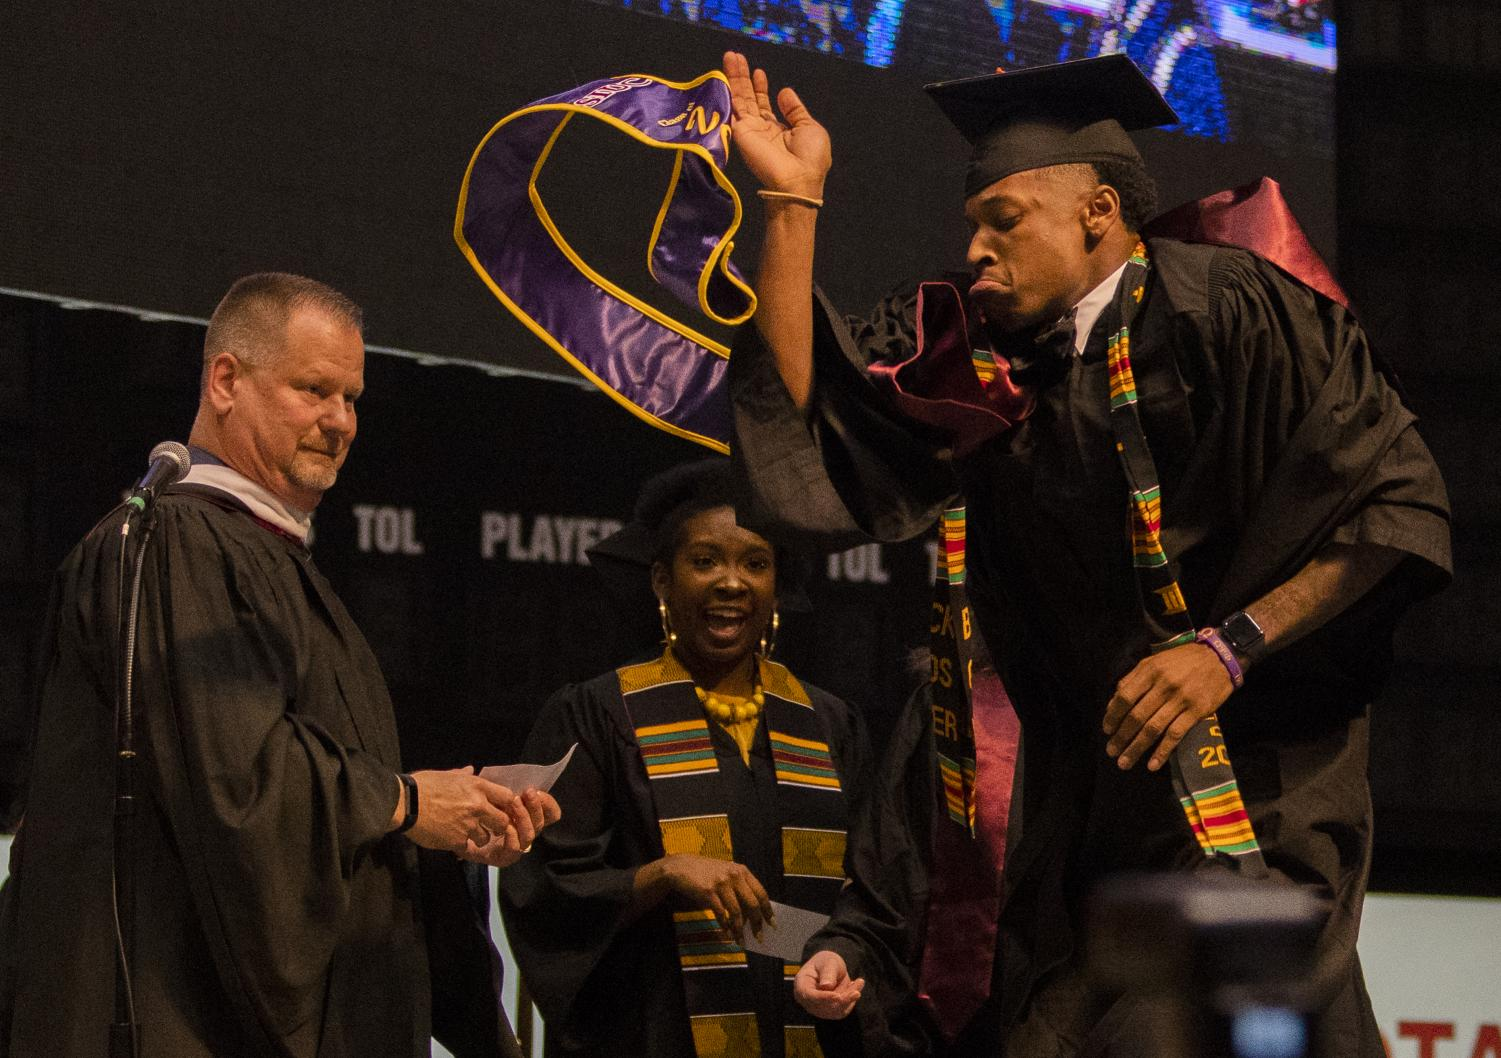 Antrell+Williams+dances+before+receiving+his+diploma+on+Saturday%2C+May+11%2C+2019+during+the+2019+commencement+inside+the+SIU+Arena.+Williams+graduated+with+a+bachelors+in+health+care+management.